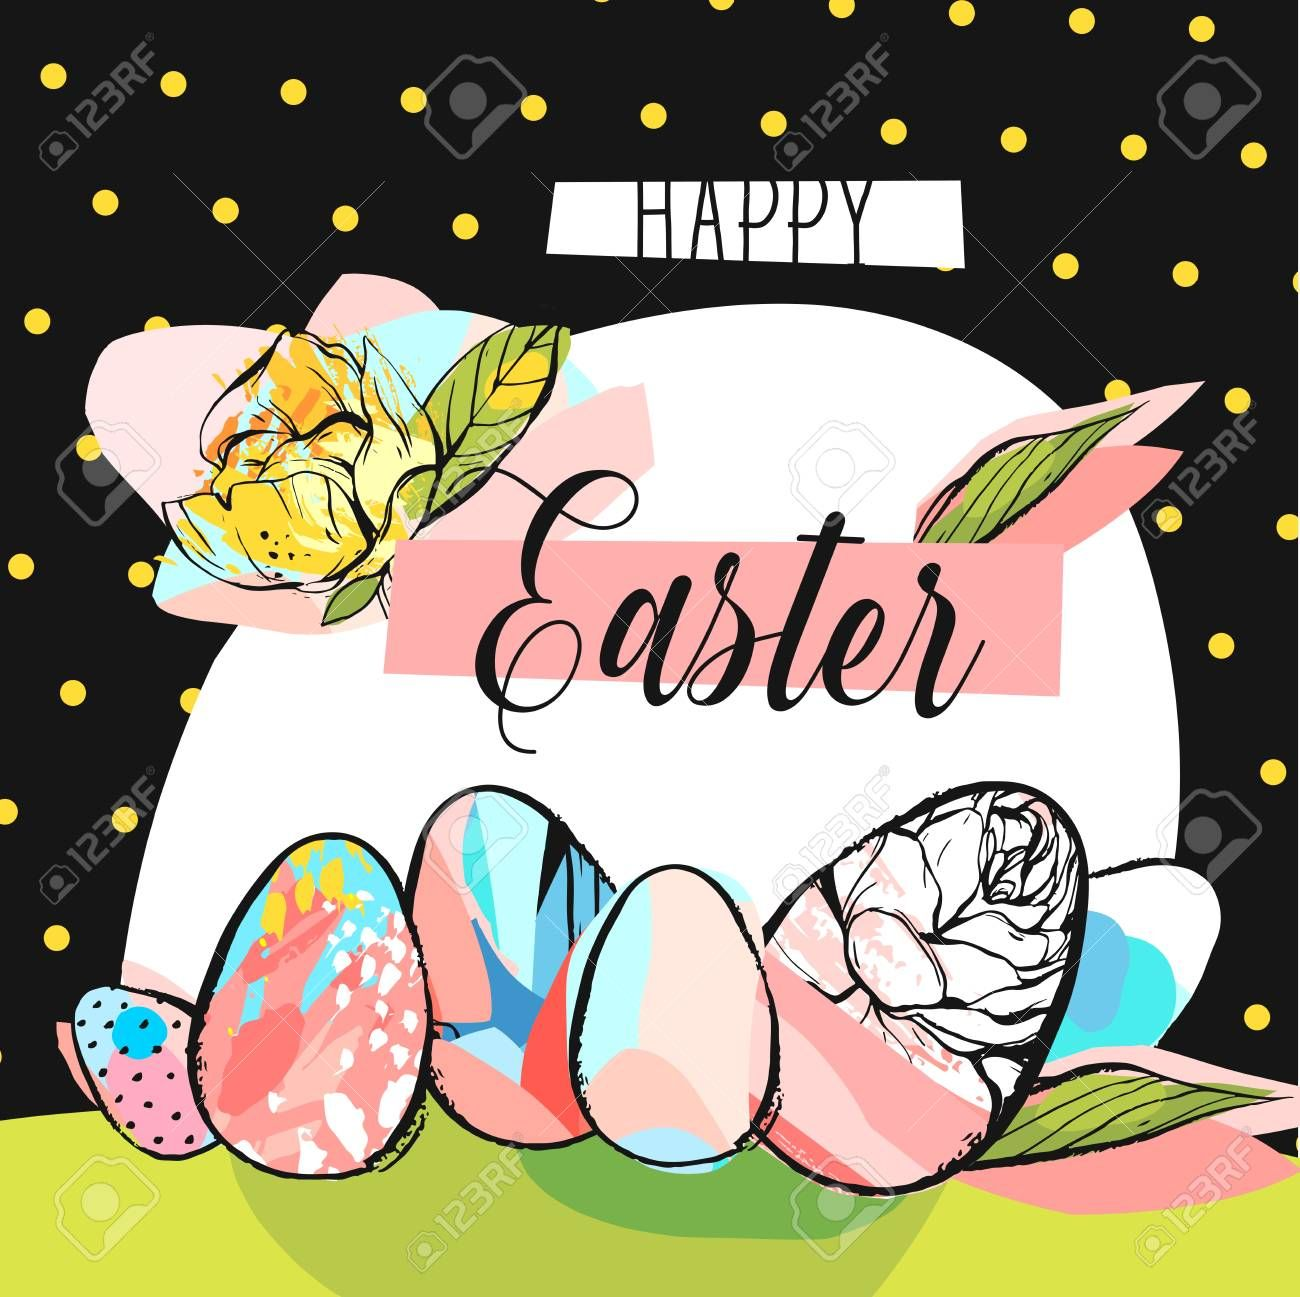 Hand Drawn Vector Abstract Creative Happy Easter Greeting Card Design Template With Painted E Happy Easter Greetings Greeting Card Design Easter Greeting Cards